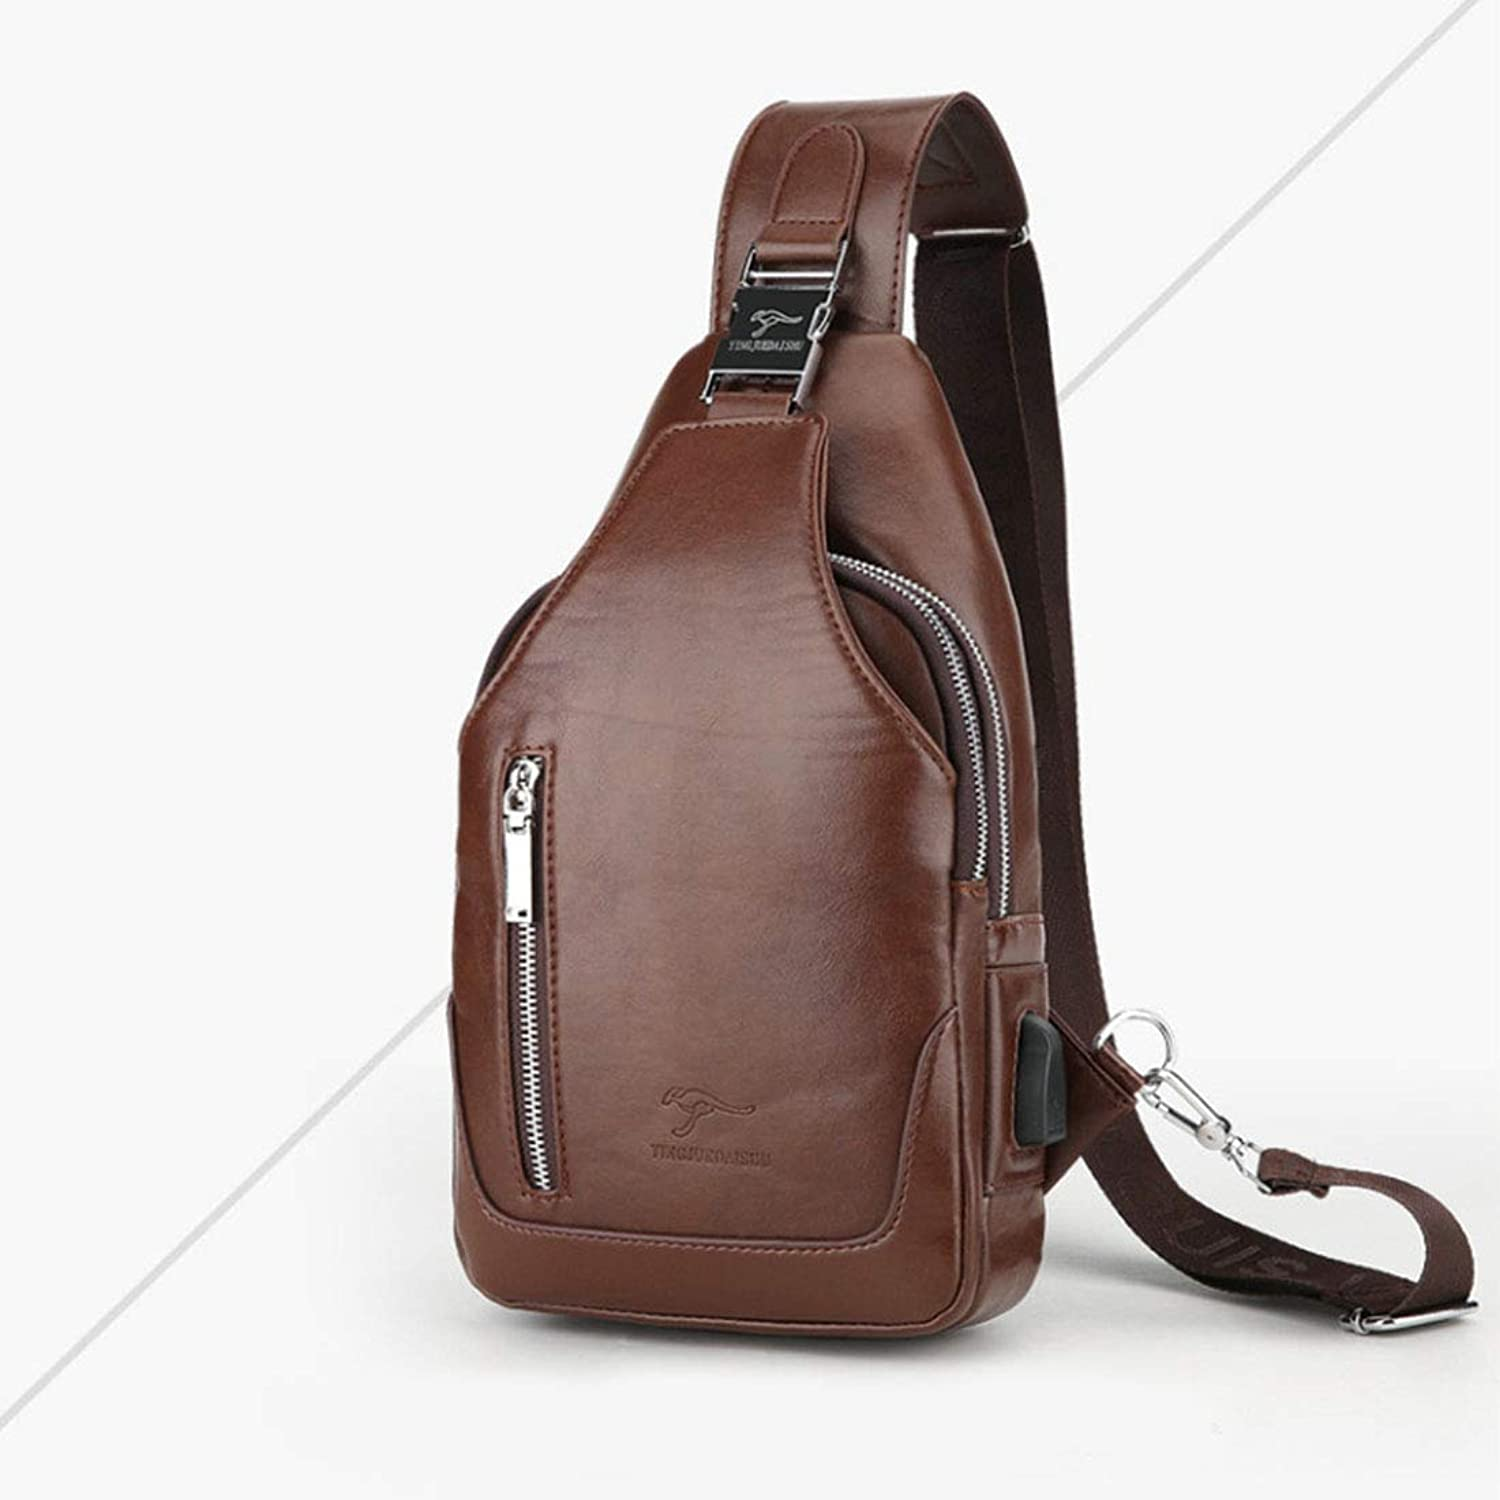 056639abbc02 Men's Sling Genuine Leather Chest Shoulder Backpack Cross Body Purse ...